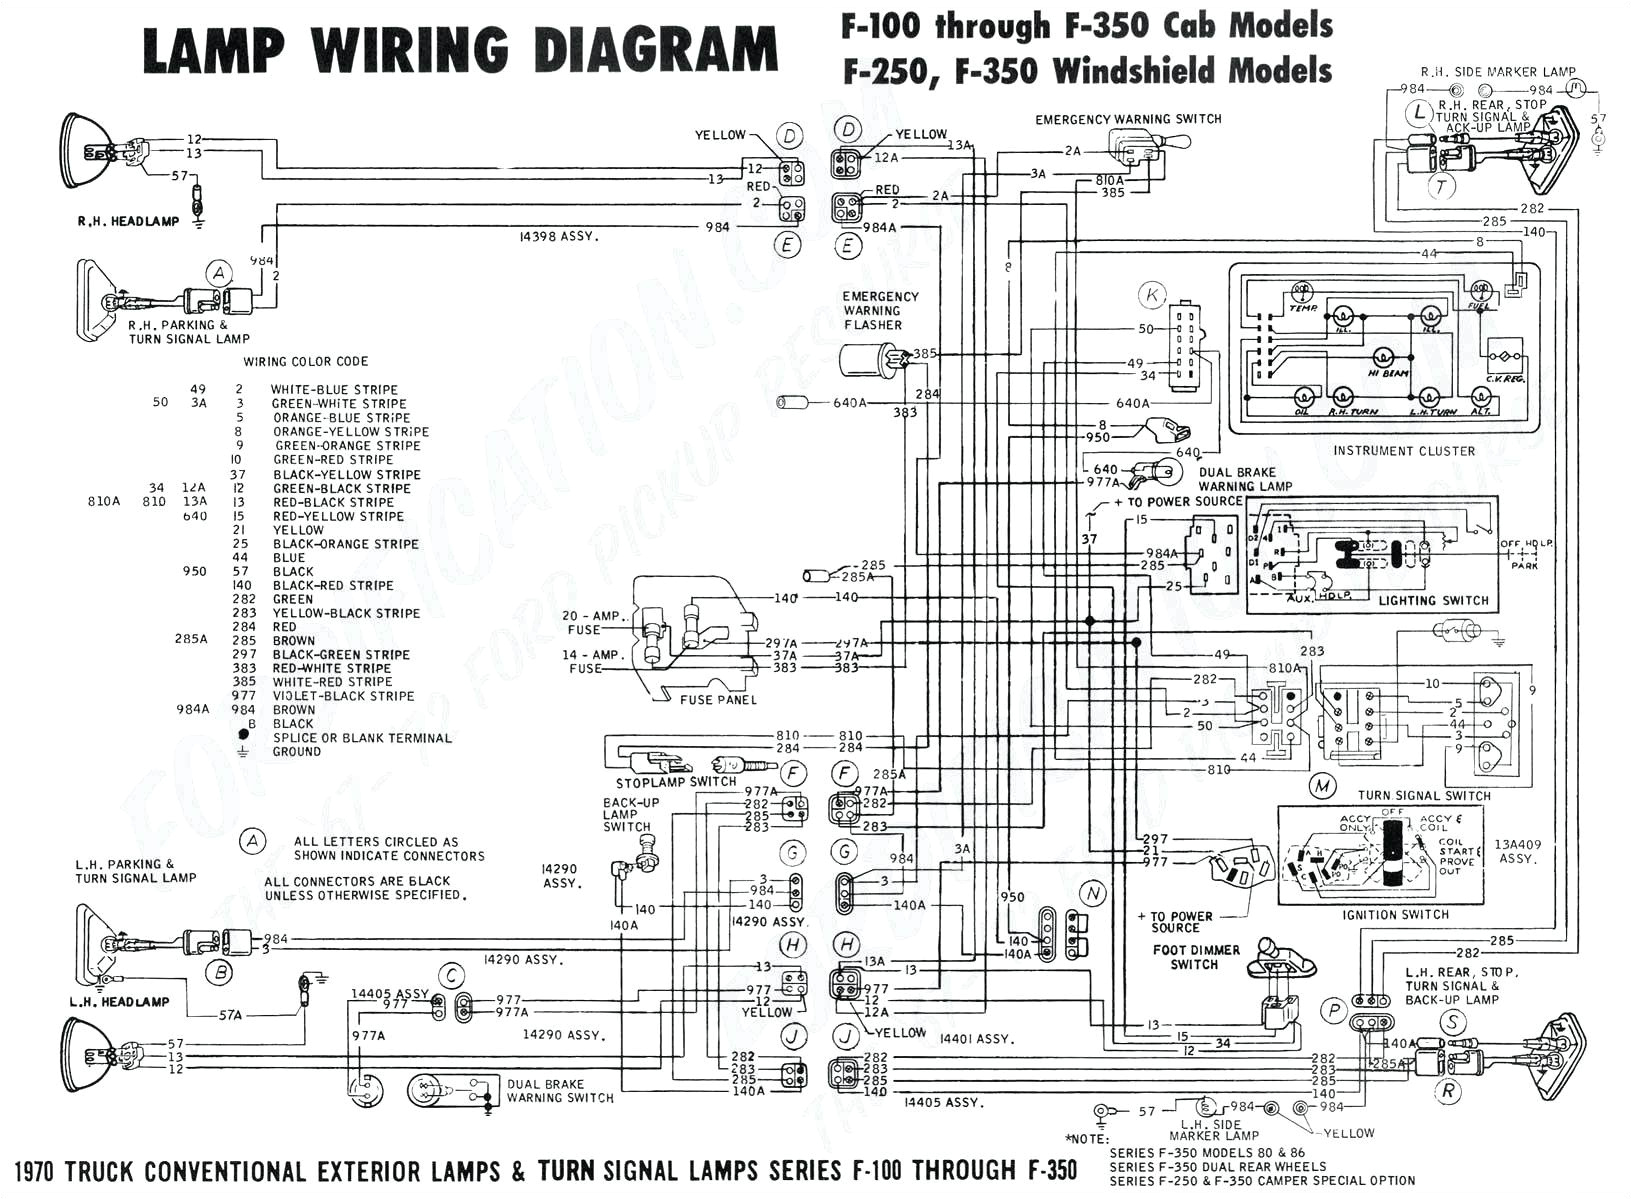 73 ford bronco fuse box wiring diagram todayford swot analysis or 73 ford bronco fuse box